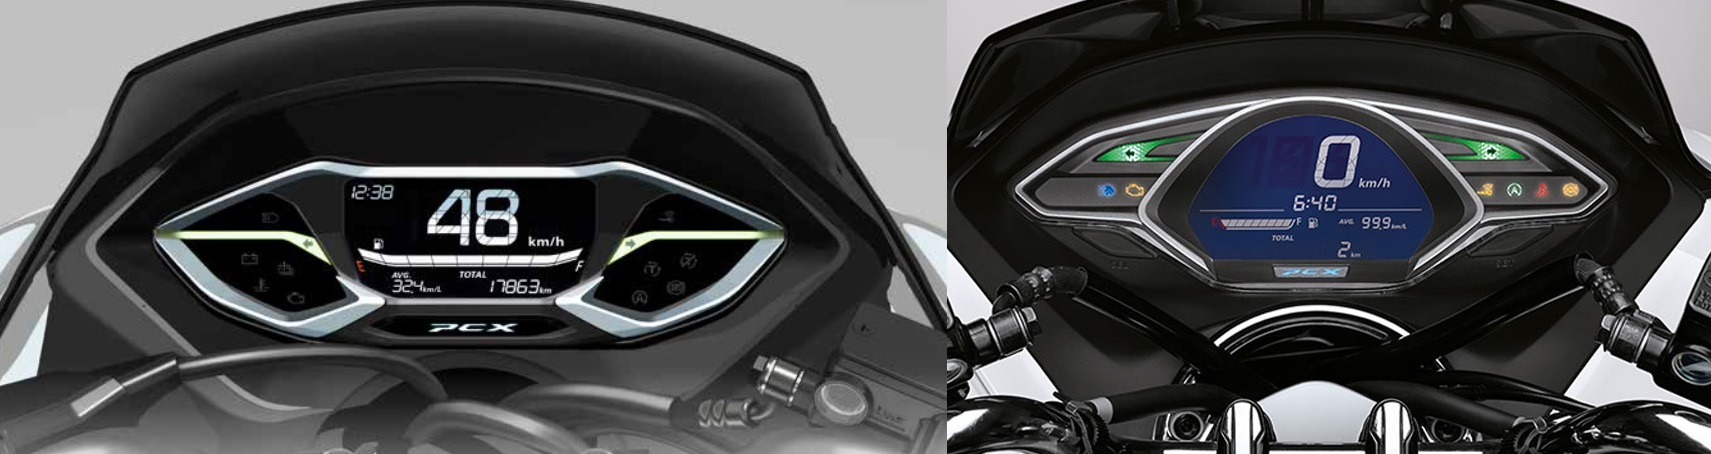 Honda PCX160 2021 vs PCX150 dashboard